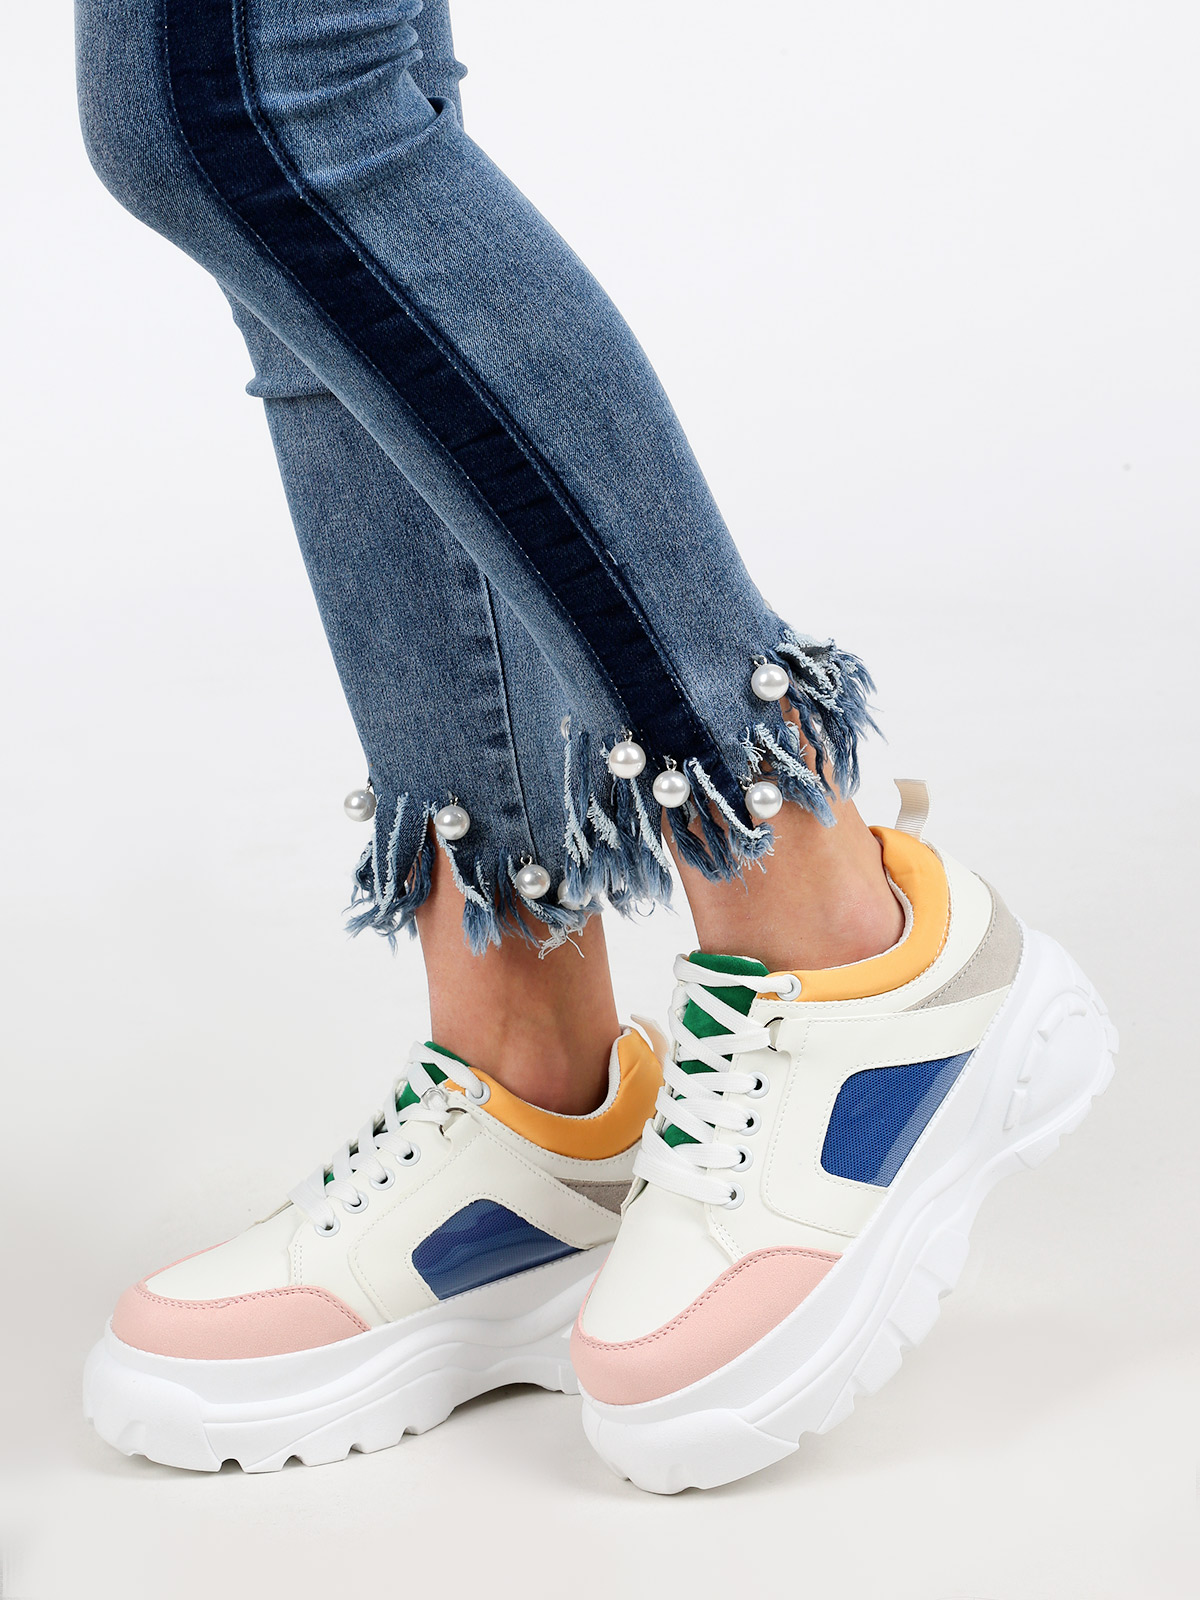 Sneakers With High Sole